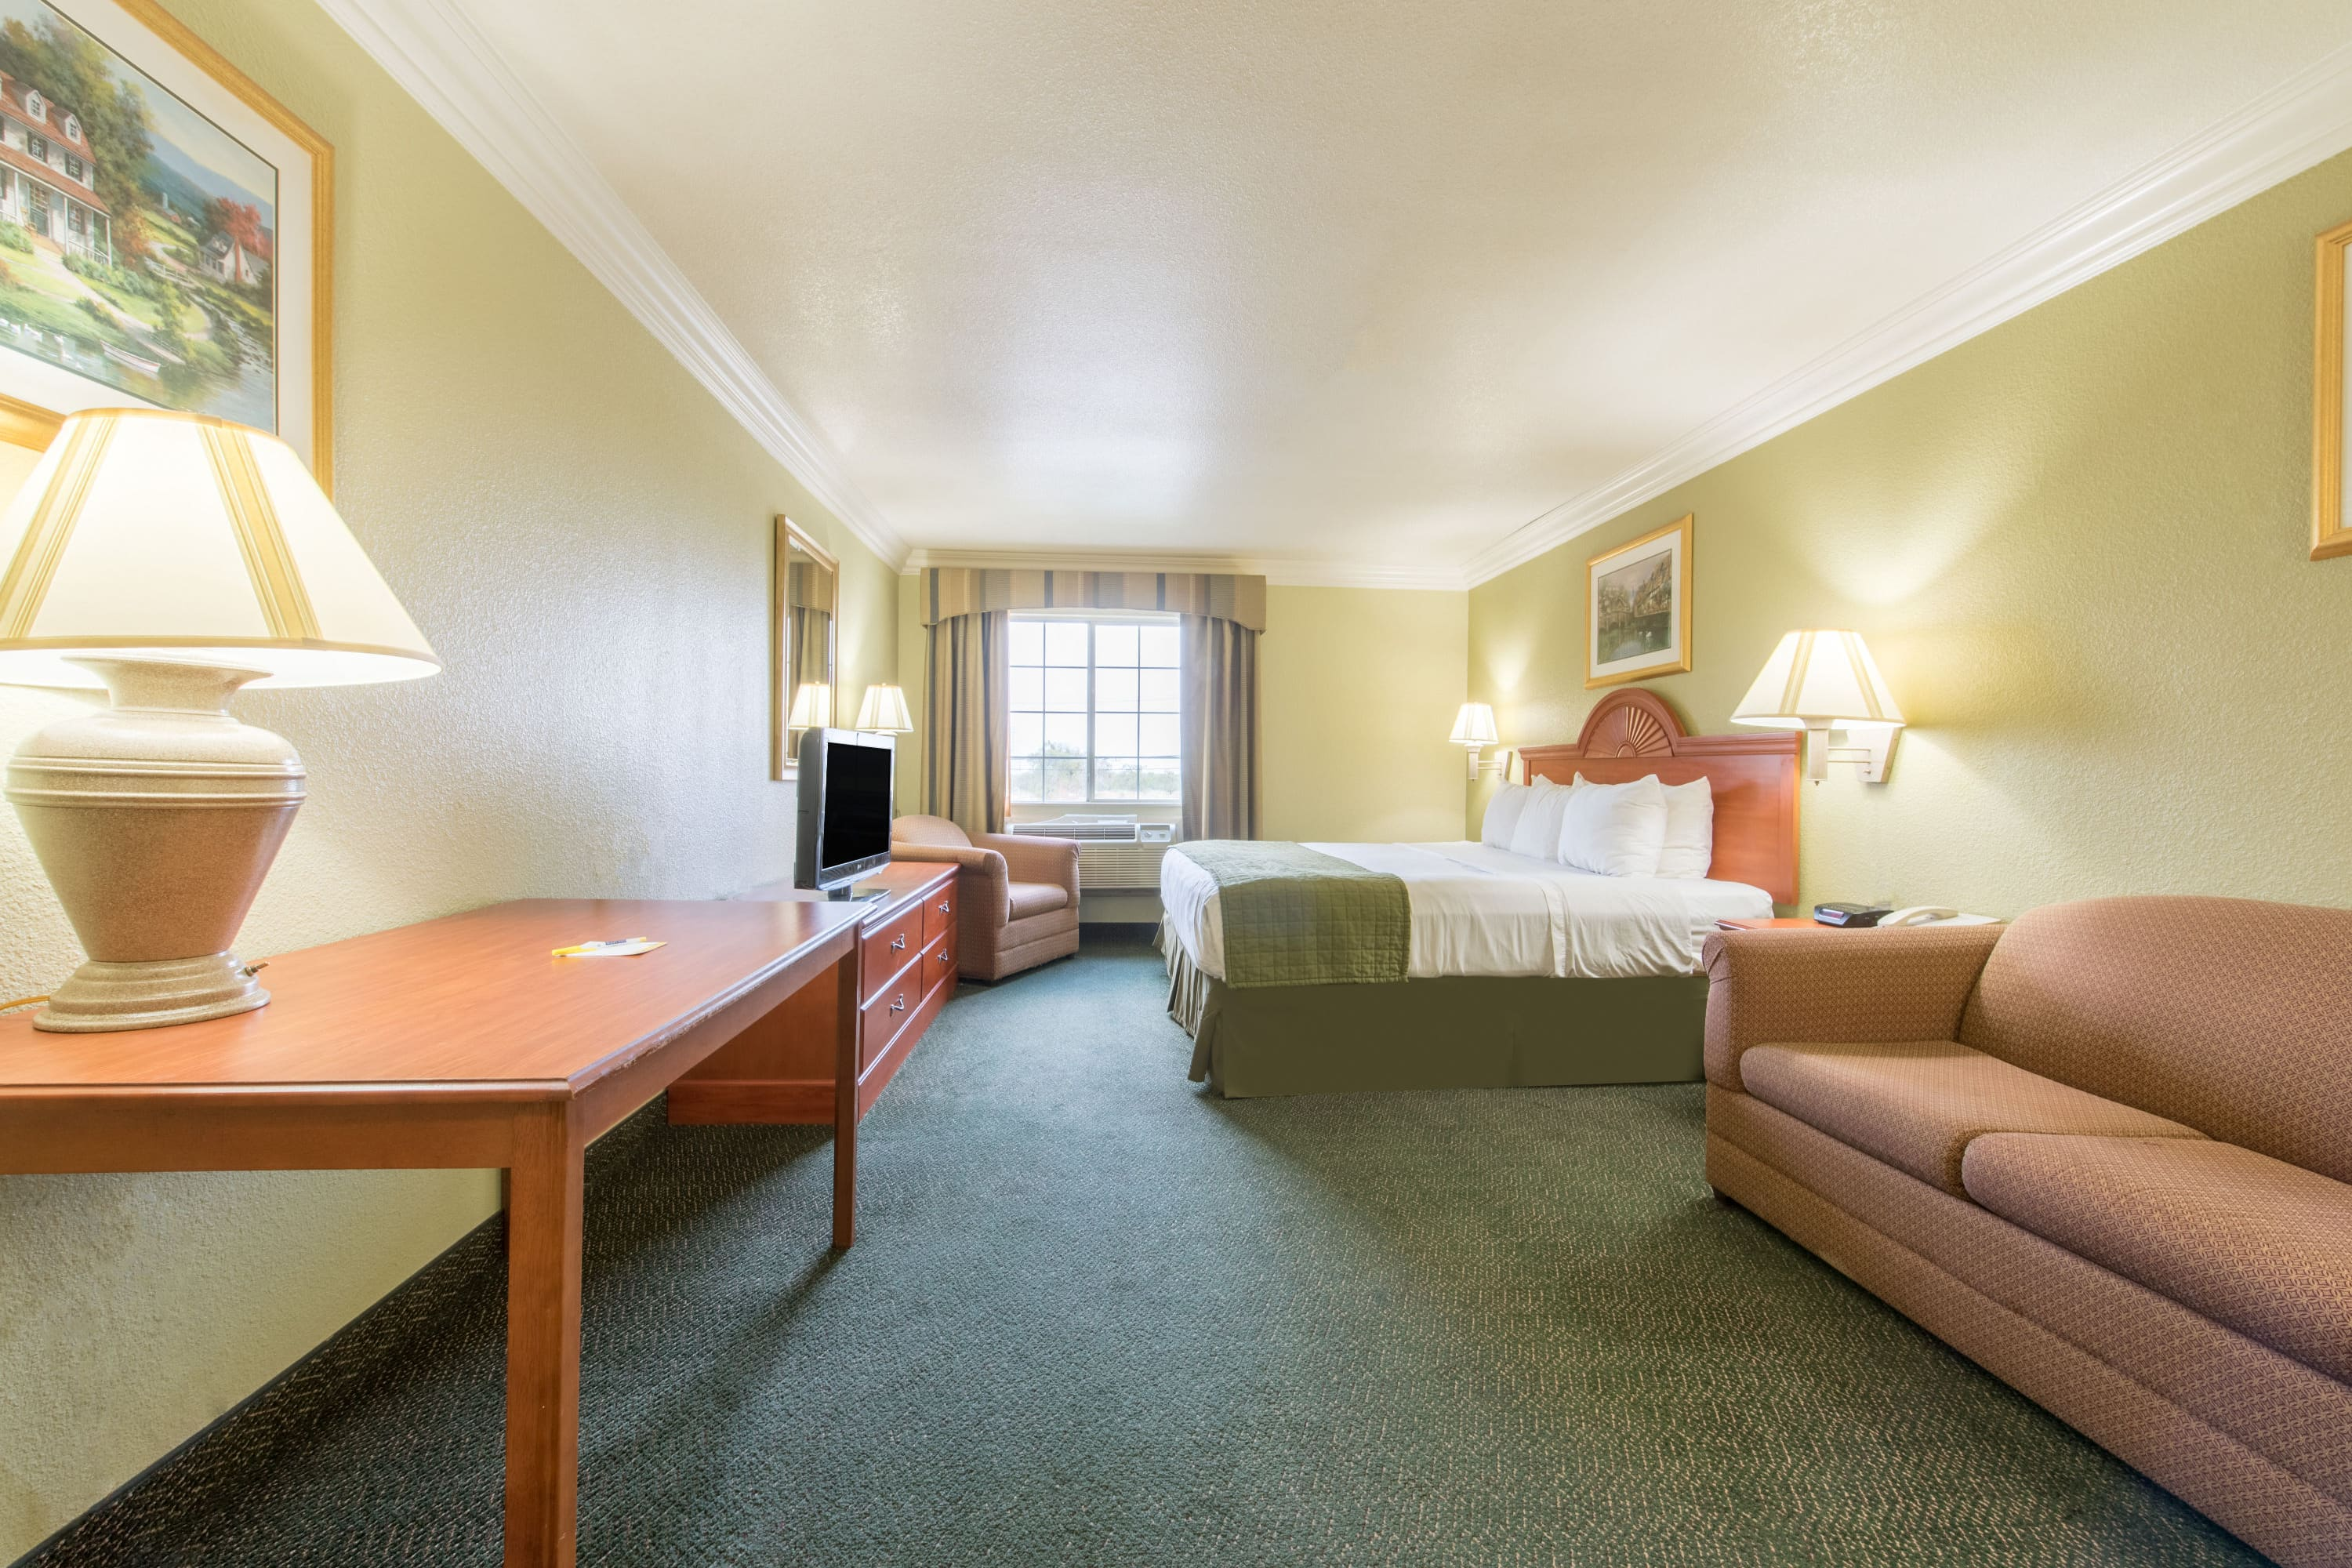 Guest room at the Days Inn Benbrook Fort Worth Area in Benbrook, Texas